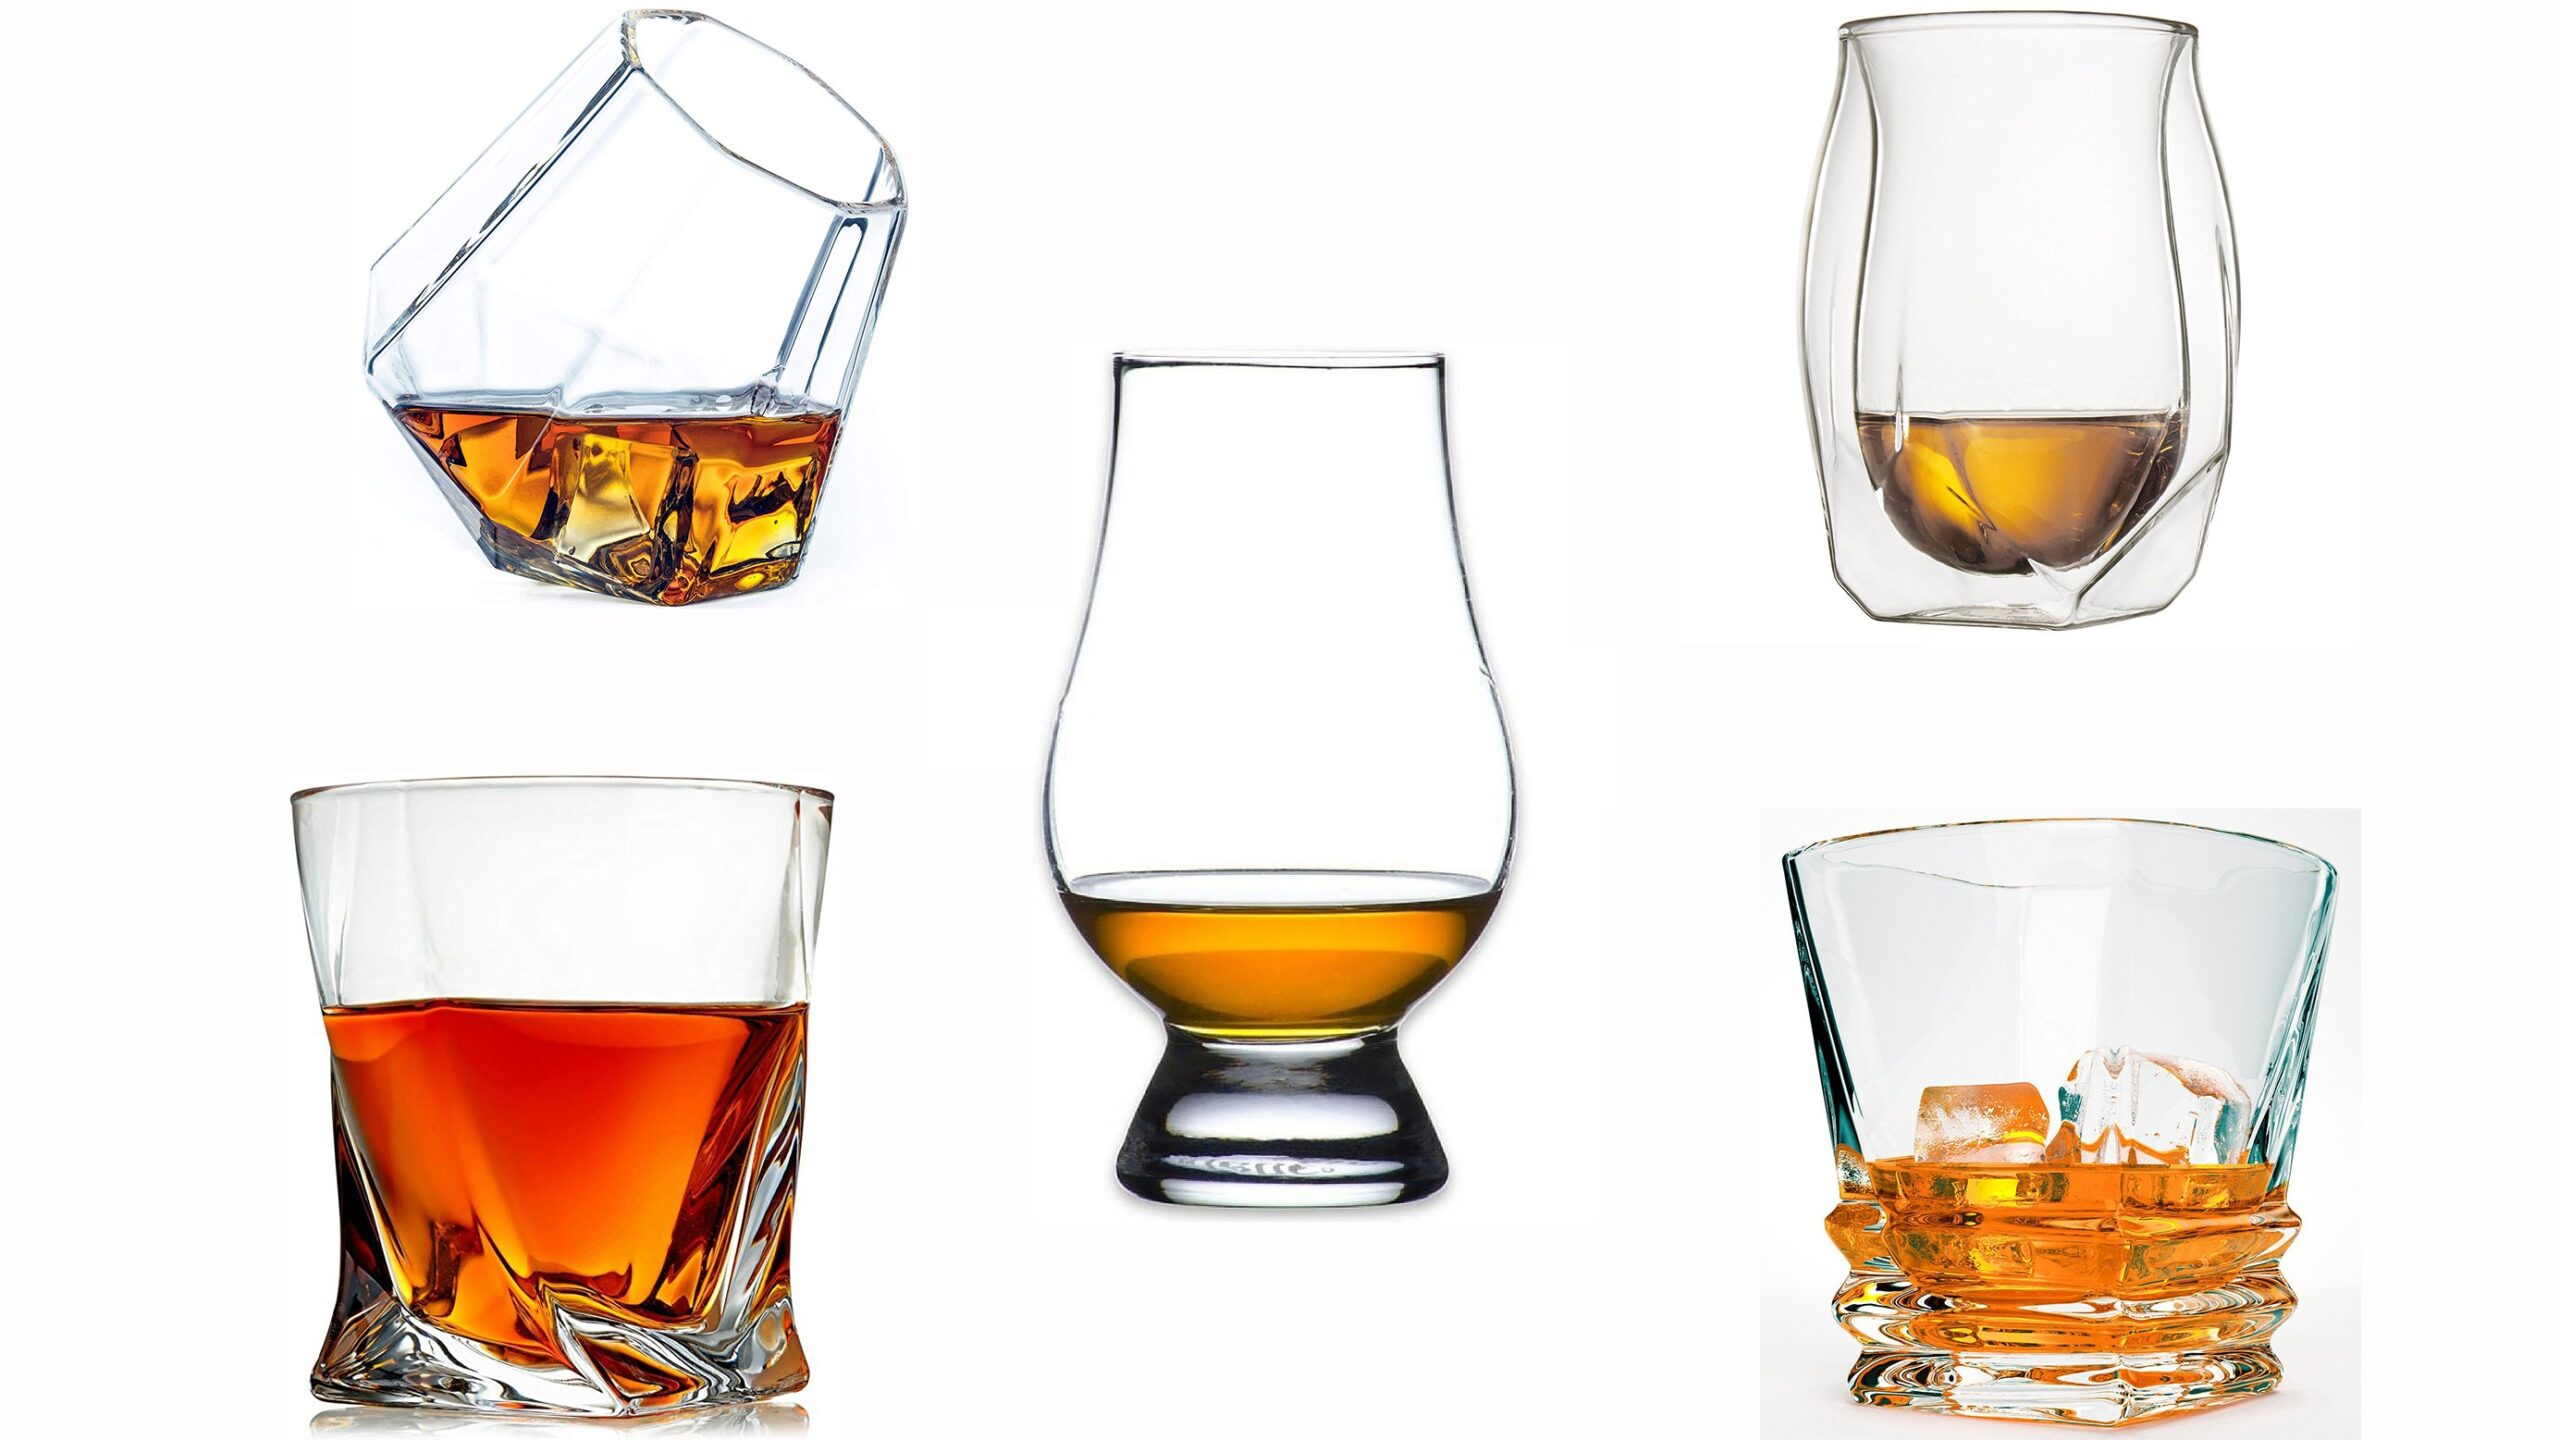 Finest Rocks Glasses Overview